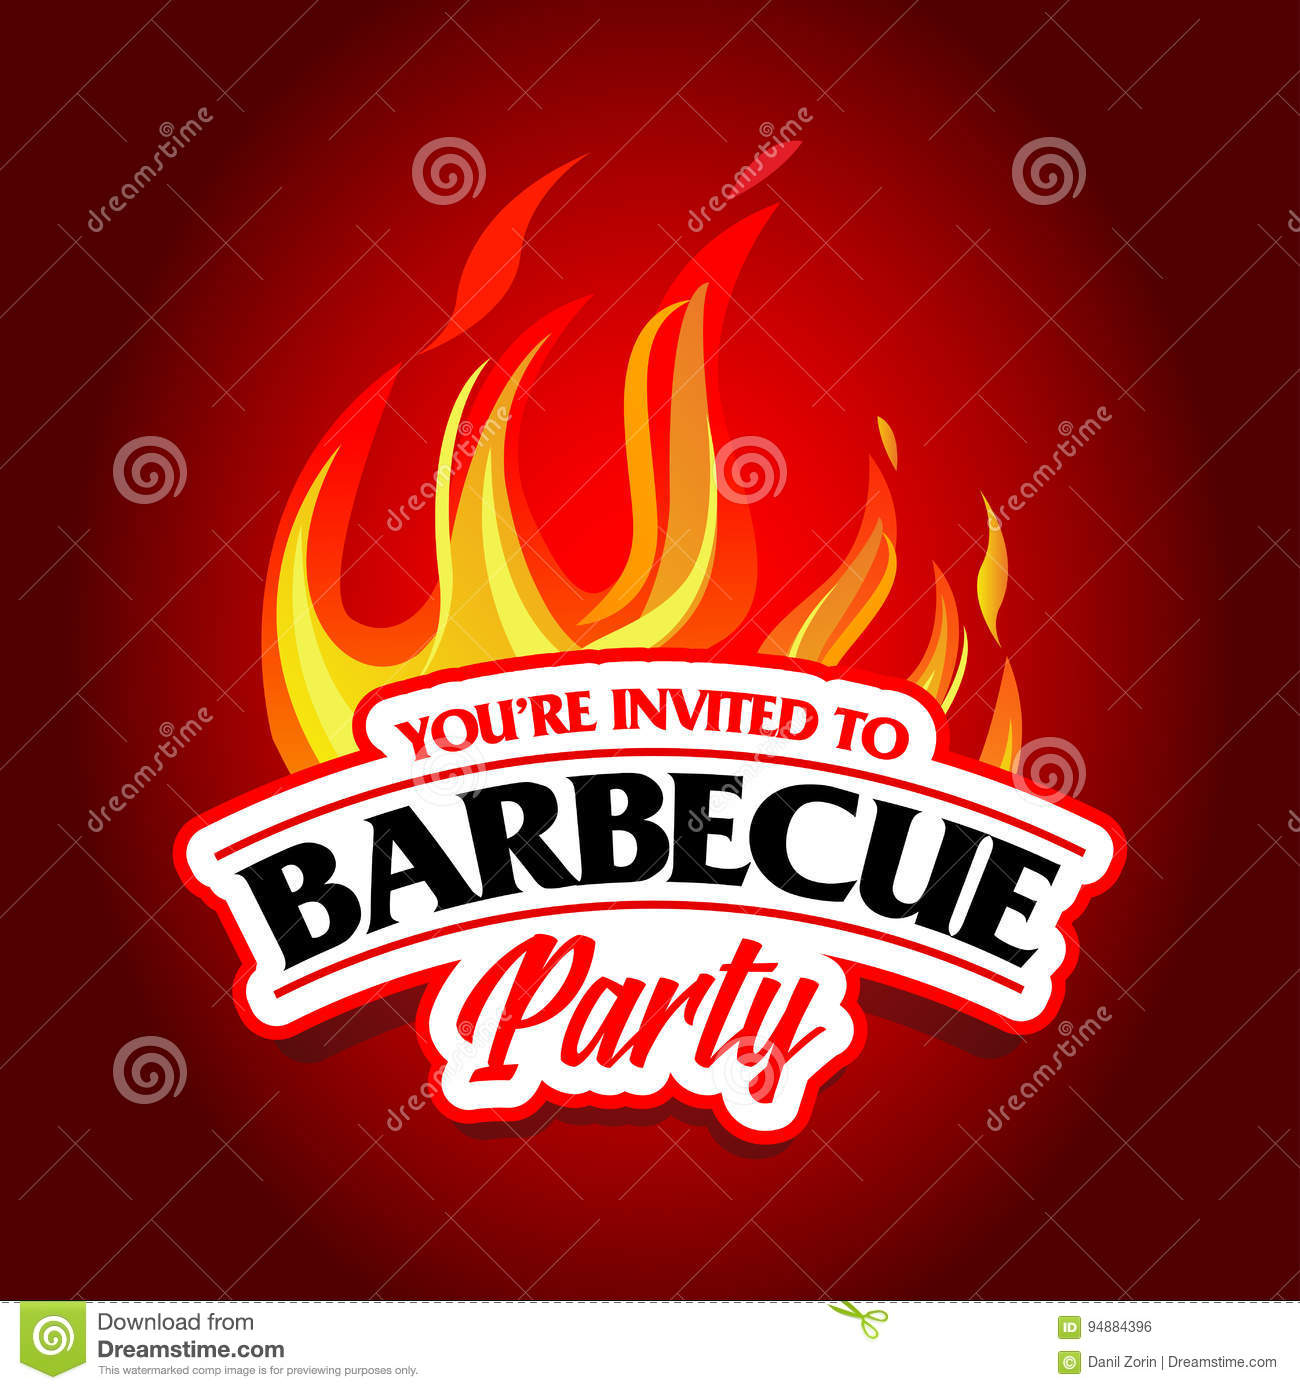 Barbecue party design, Barbecue invitation. Barbecue logo. BBQ template menu design. Barbecue Food flyer. Barbecue advertisement.